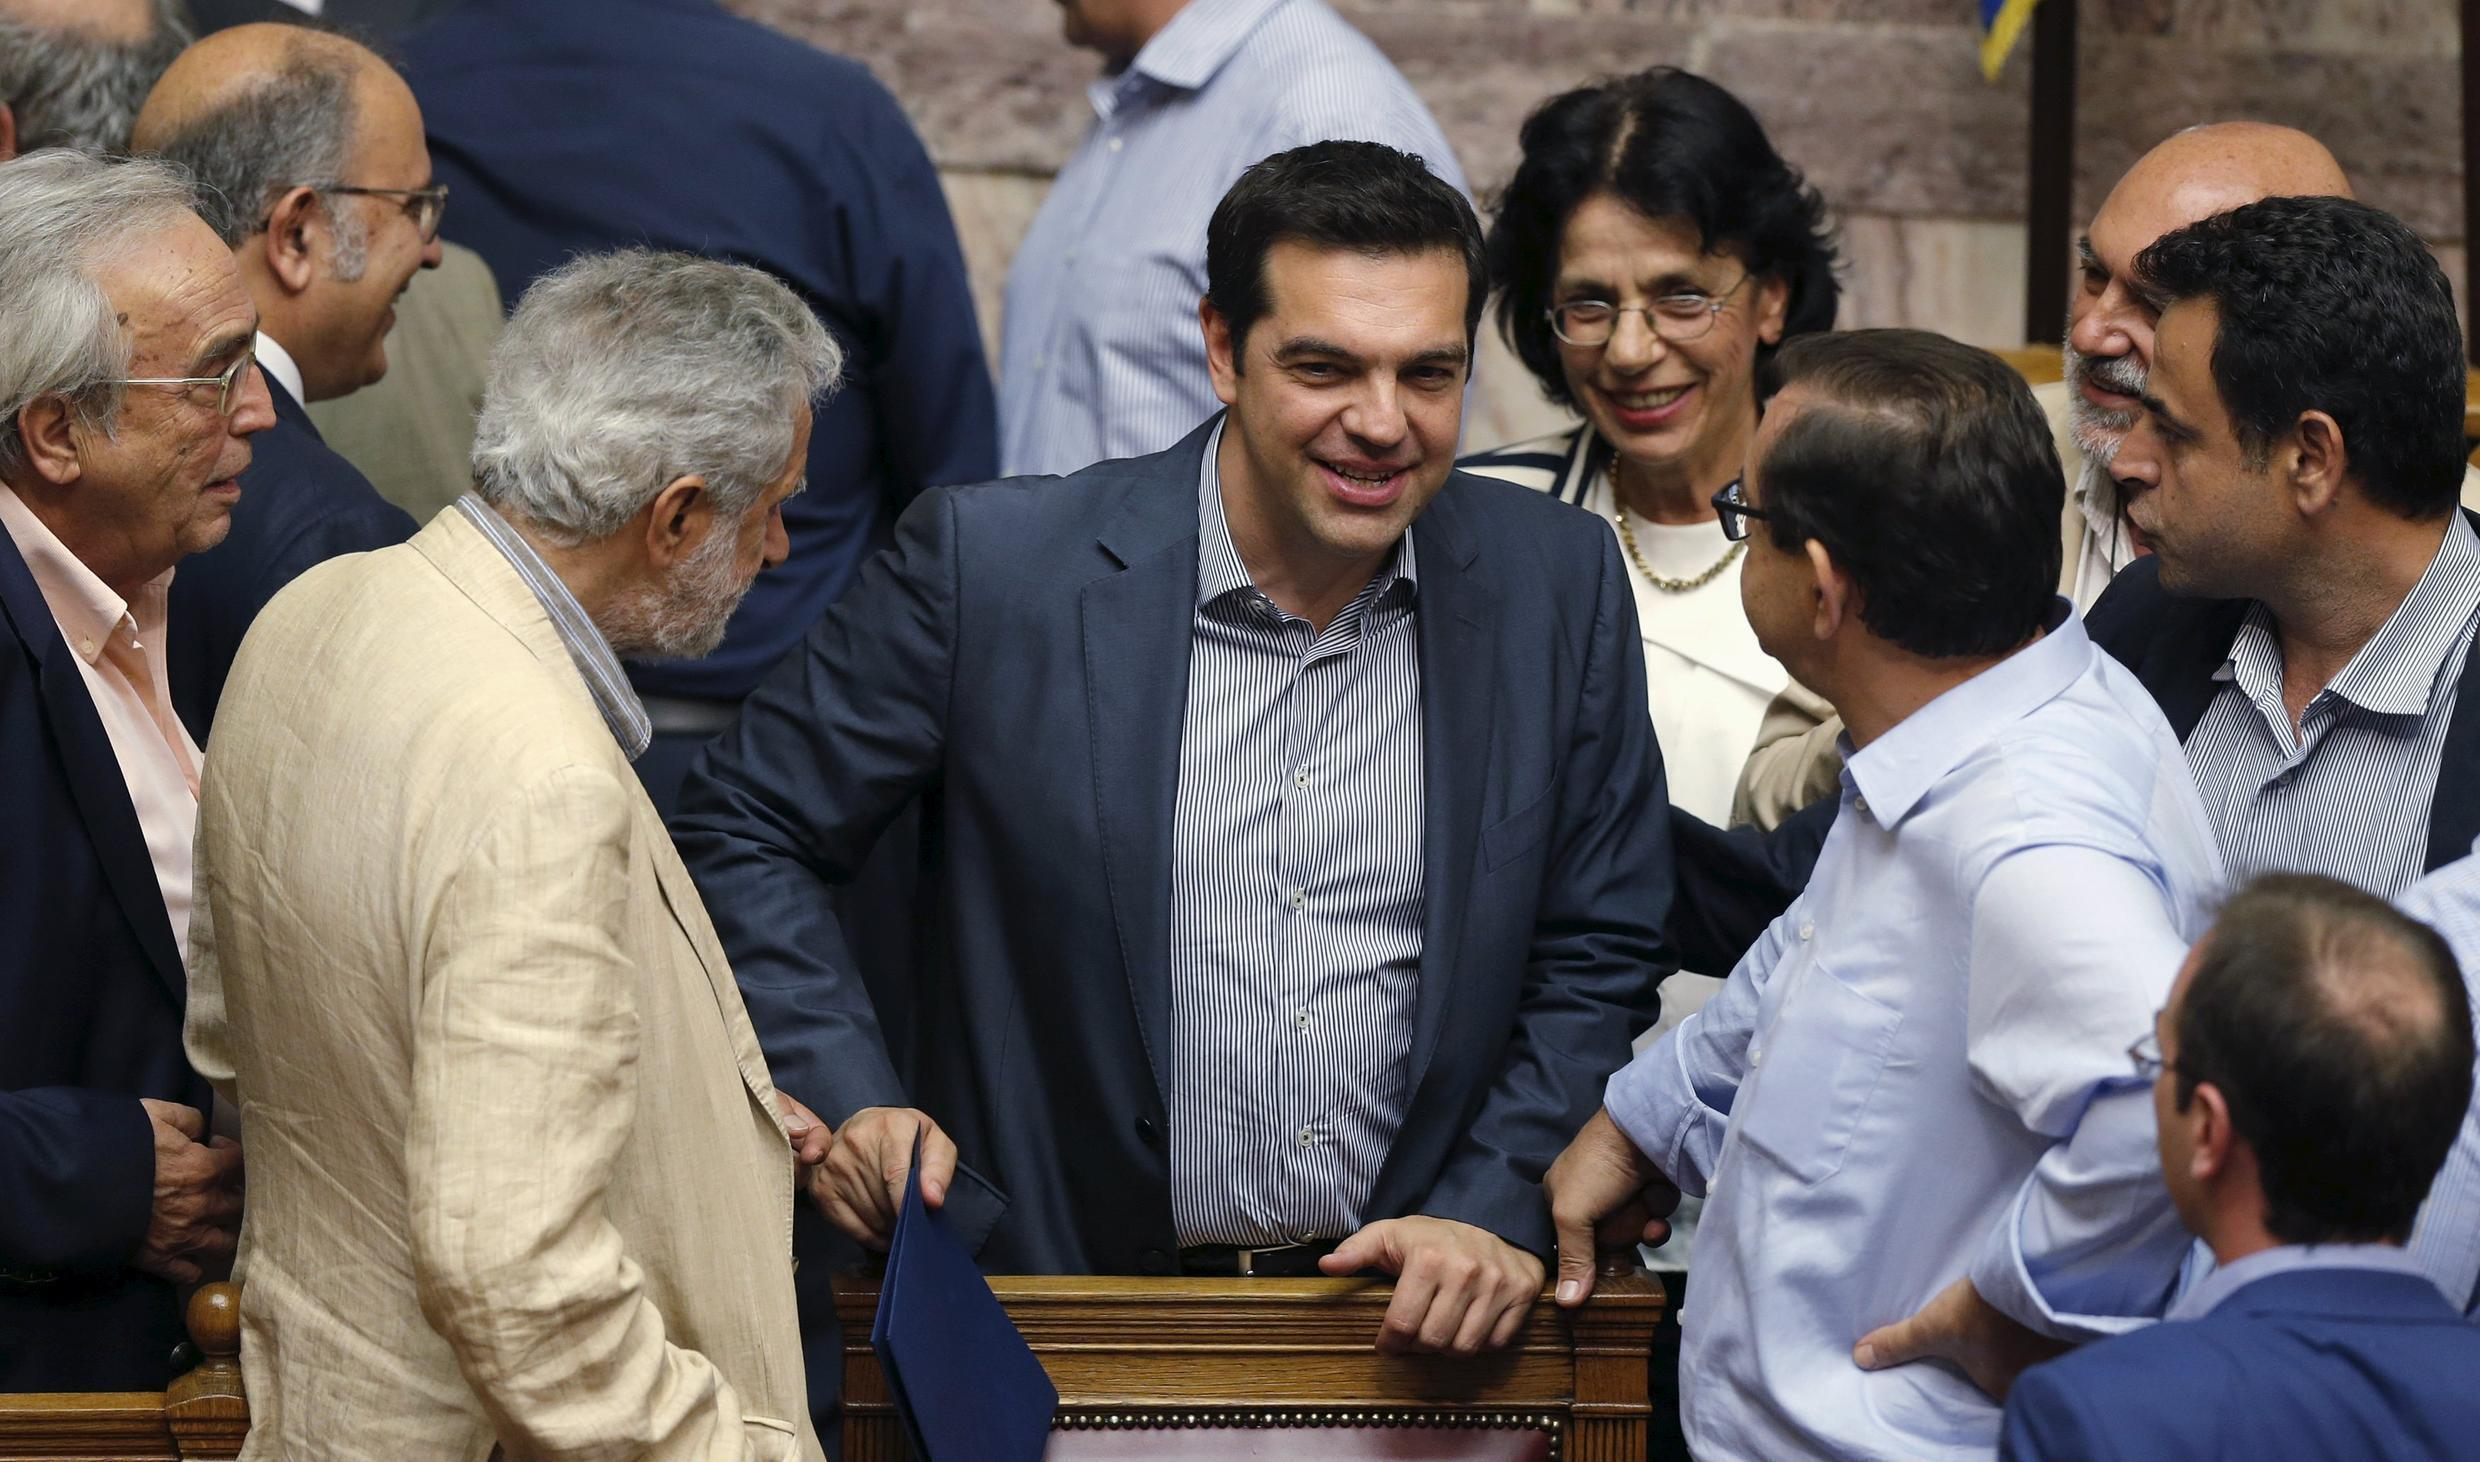 Greek Prime Minister Alexis Tsipras in parliament